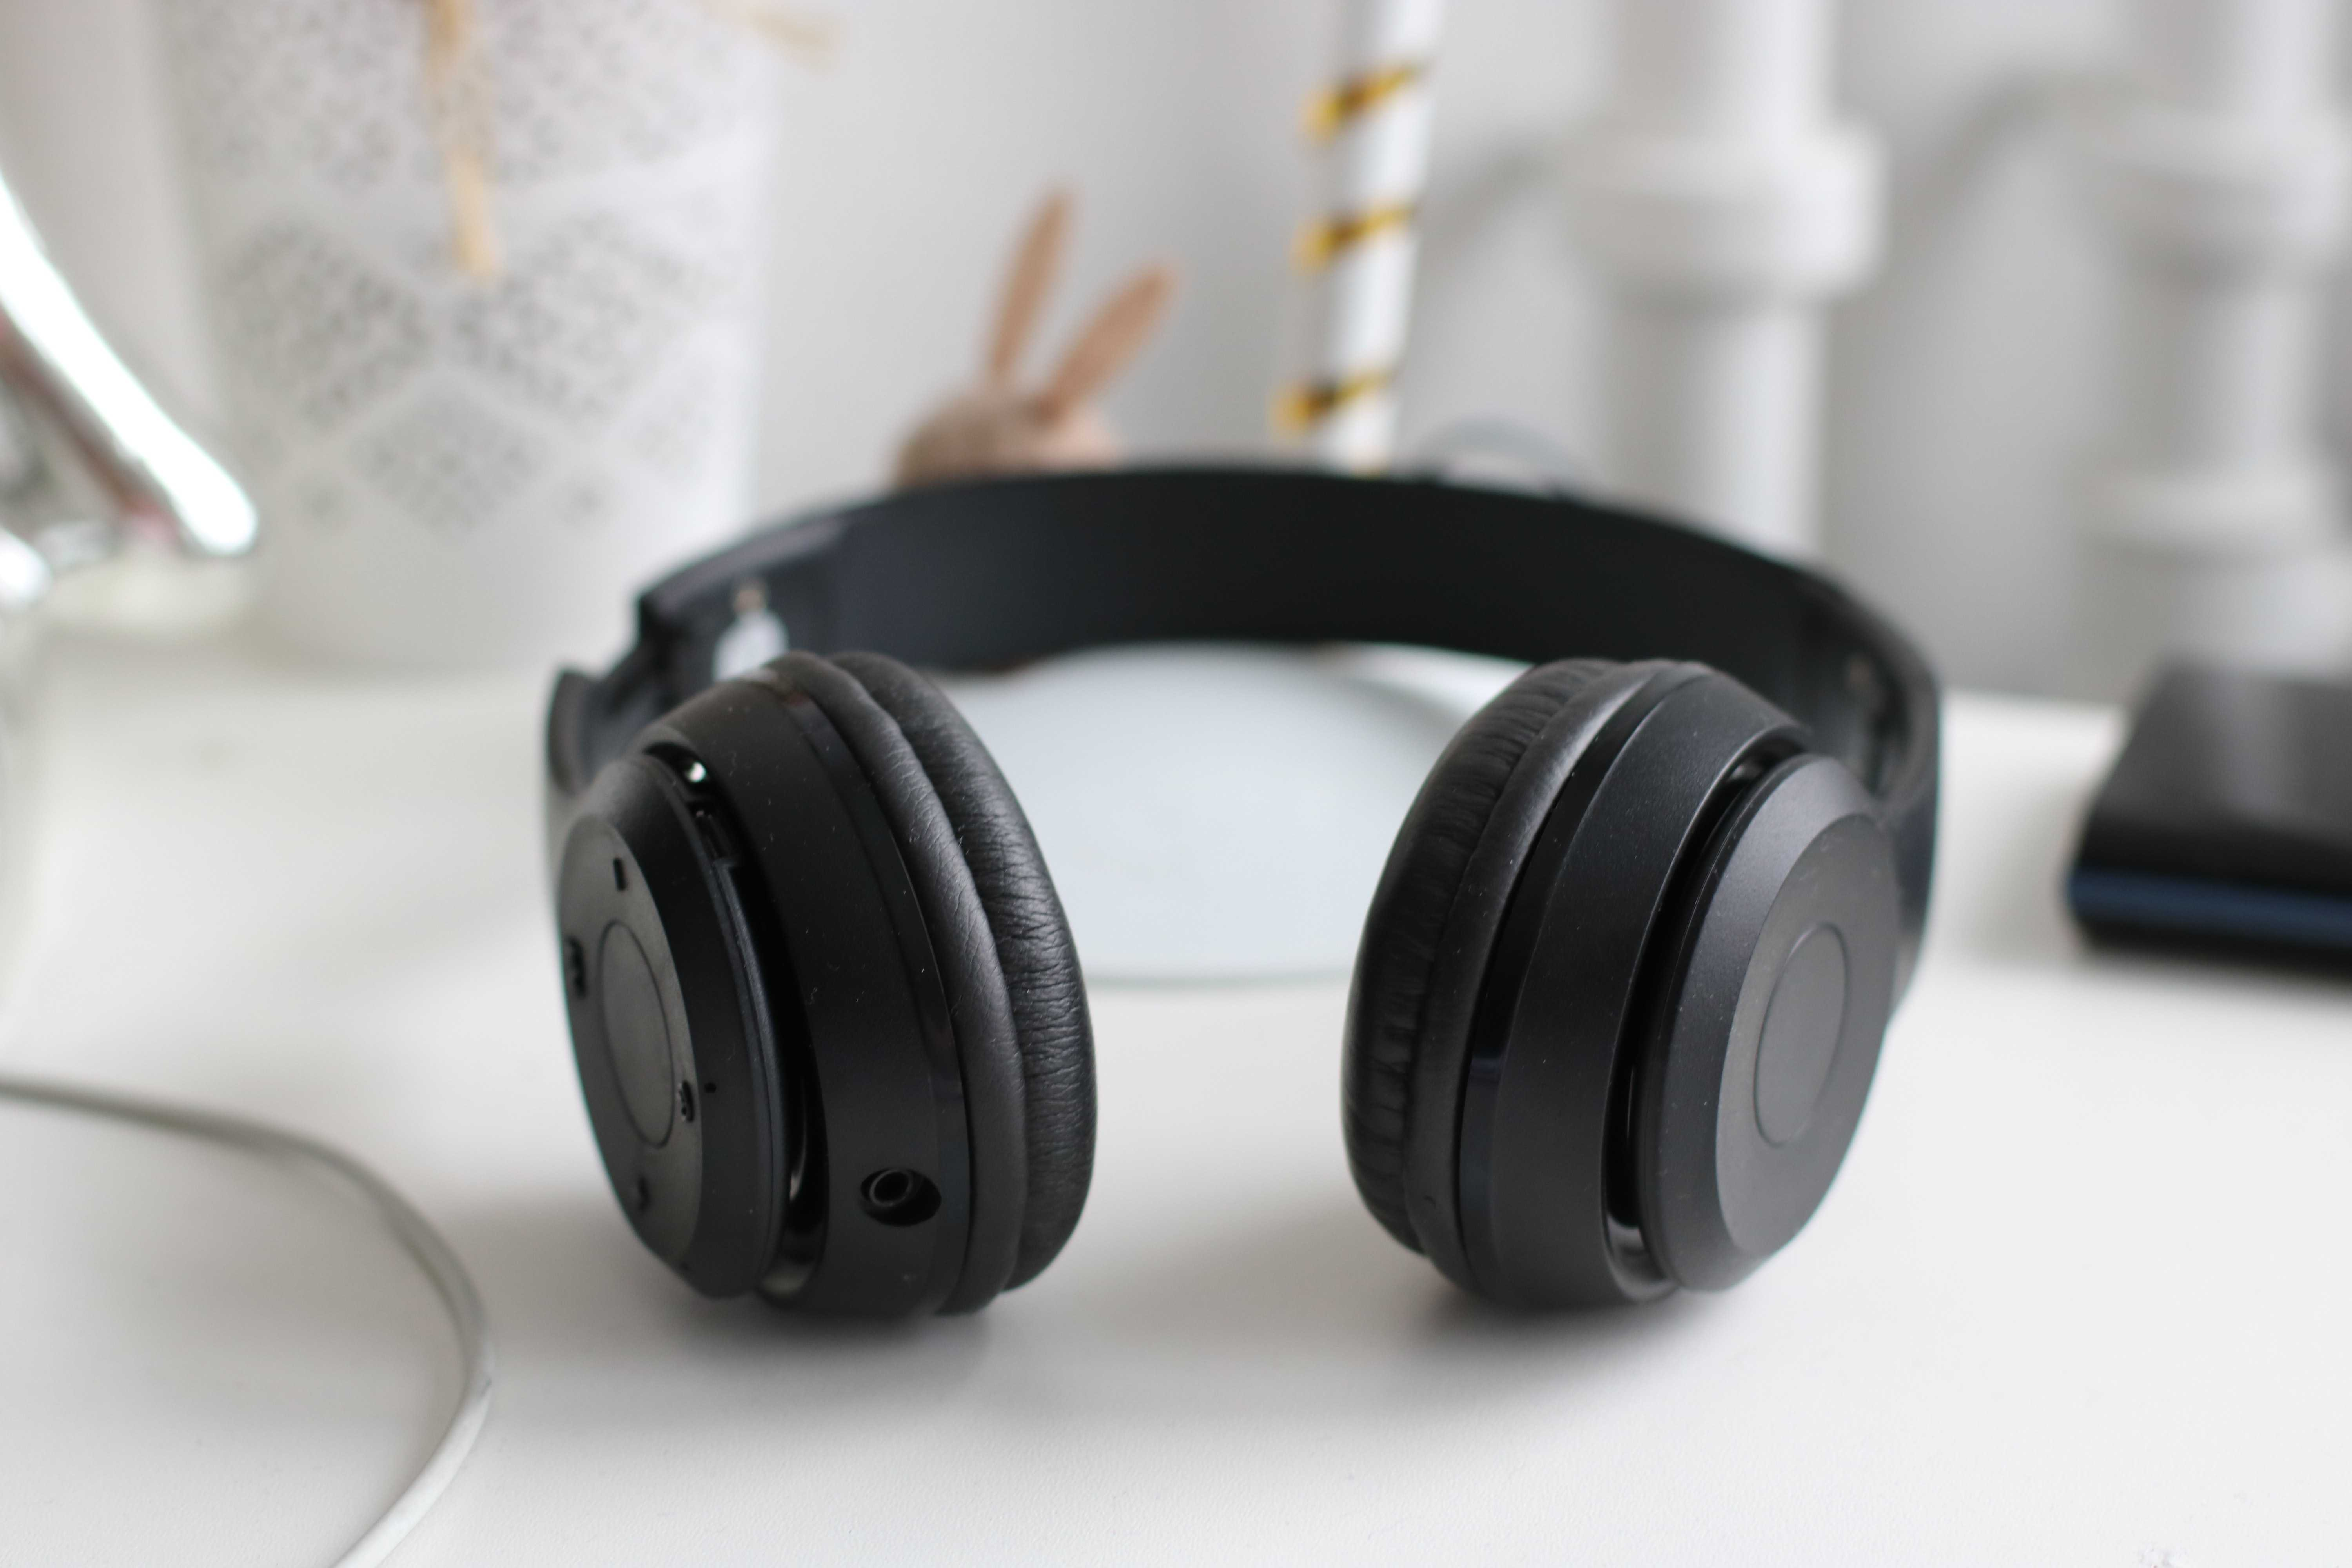 black noise cancelling headphones on a table